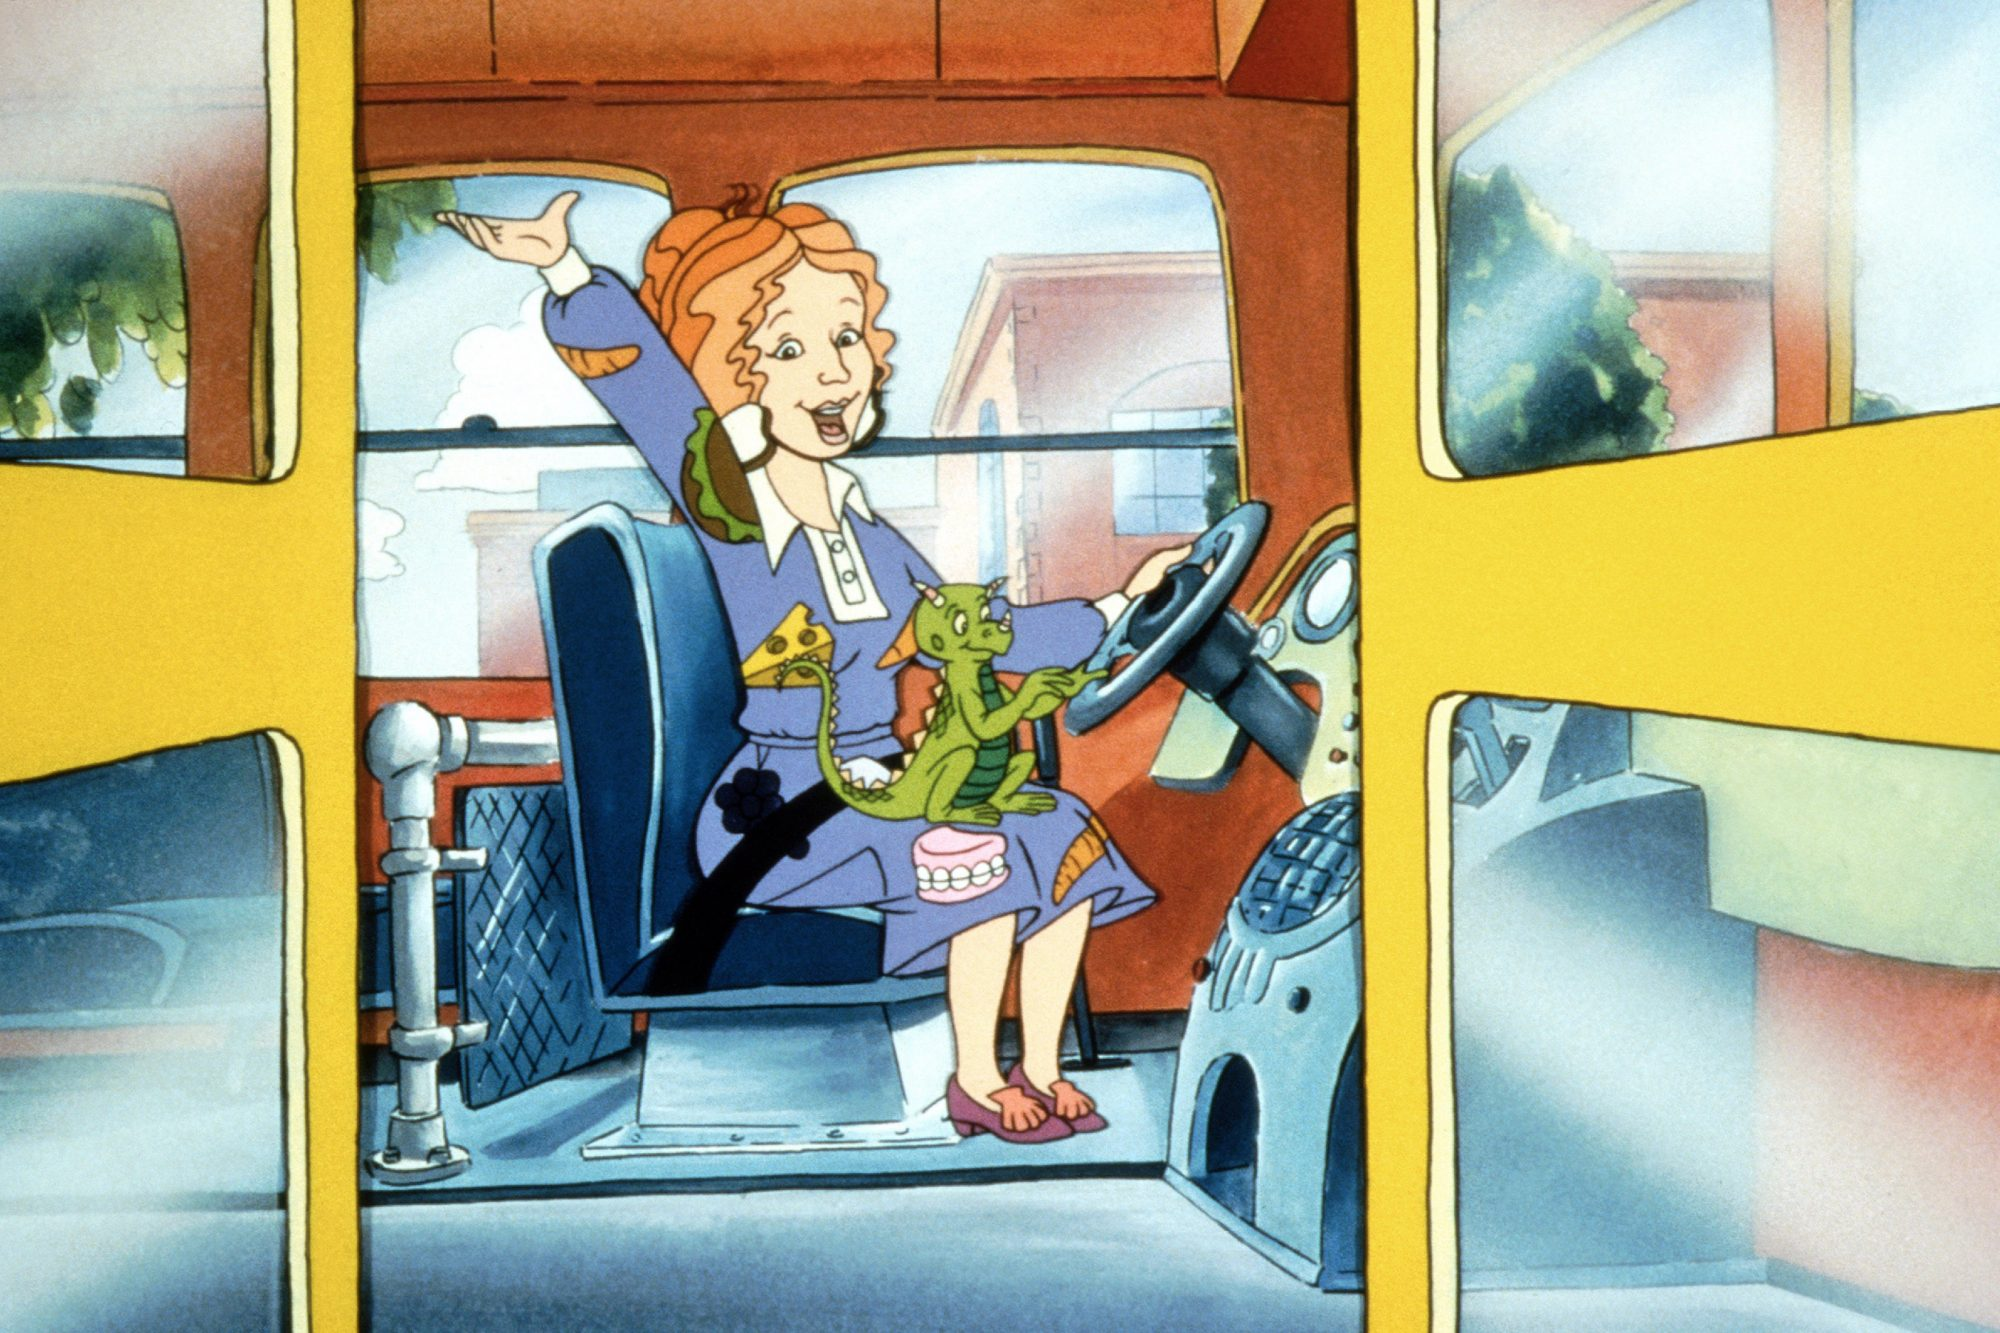 THE MAGIC SCHOOL BUS, (from left): Ms. Valerie Frizzle with Liz the chameleon, 1994-97. photo: ©